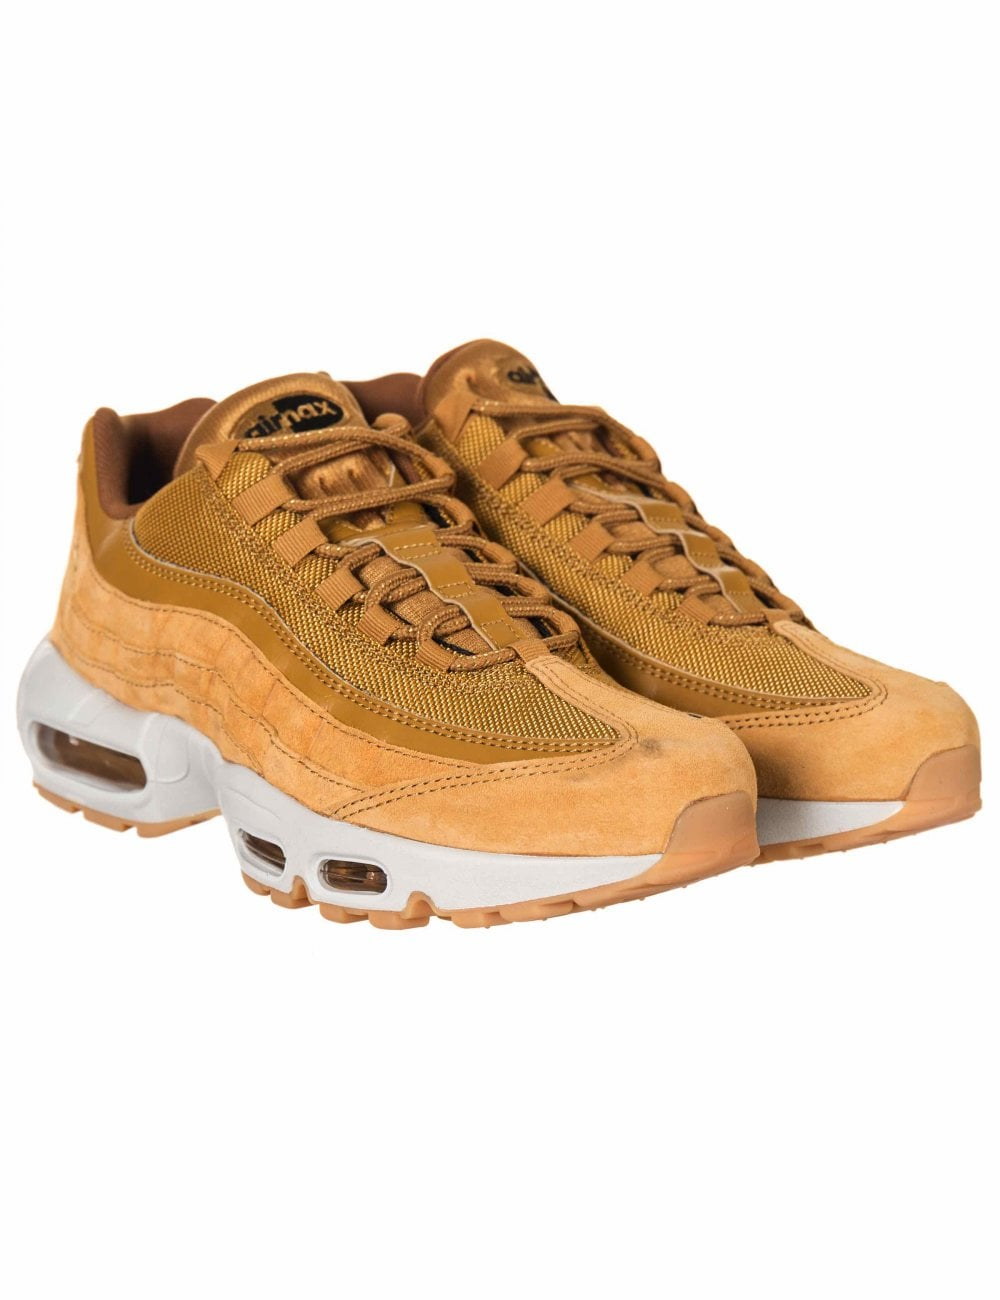 01cfd999e47 Nike Air Max 95 SE Trainers - Wheat Wheat